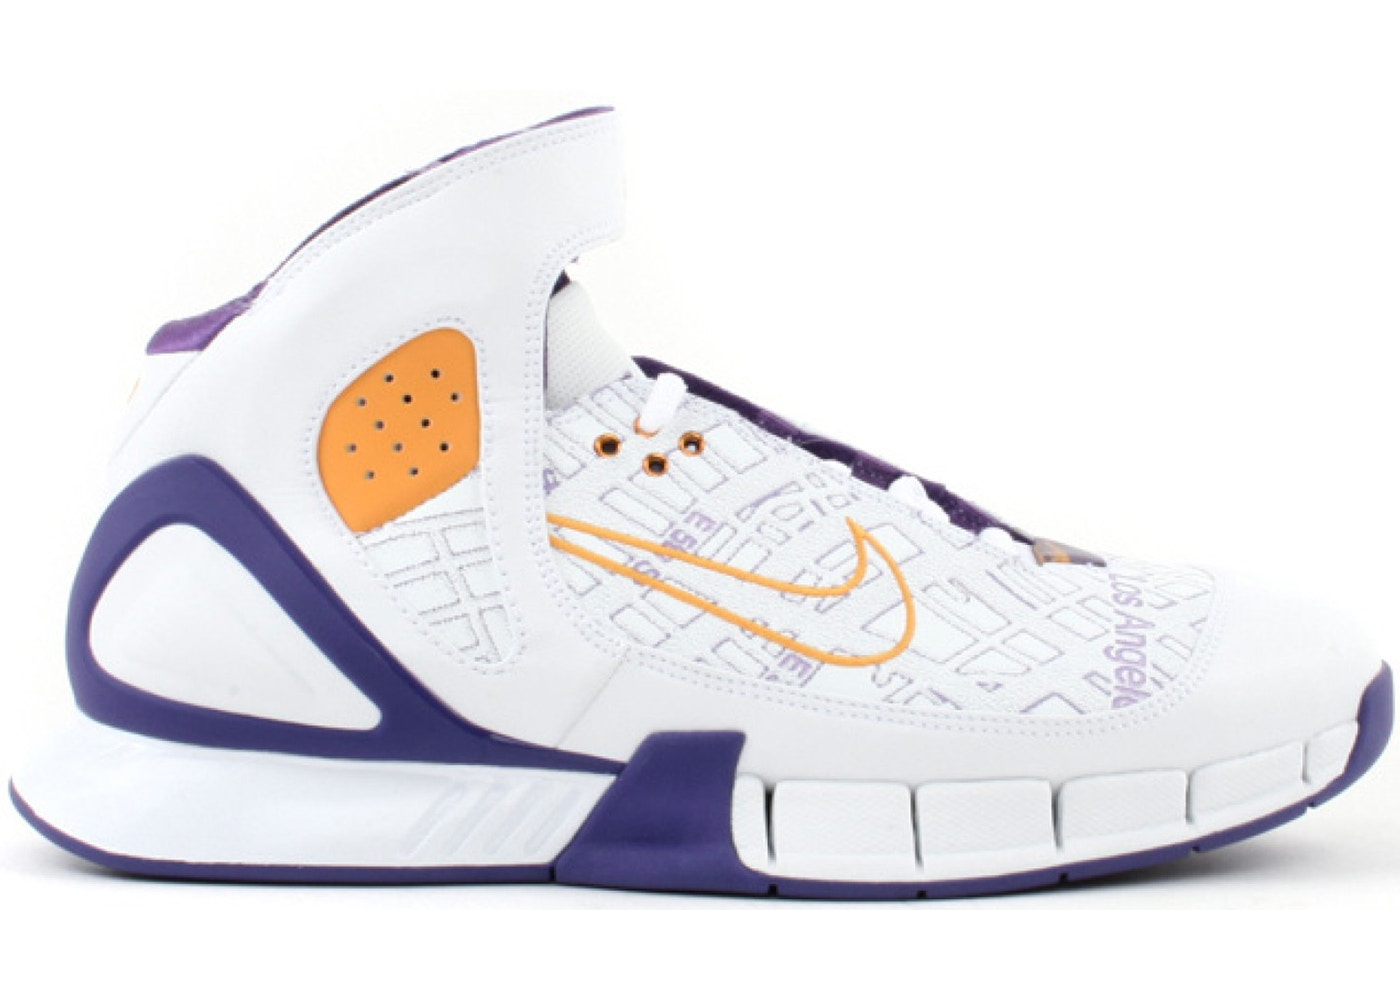 Nike Basketball Other Shoes New Highest Bids